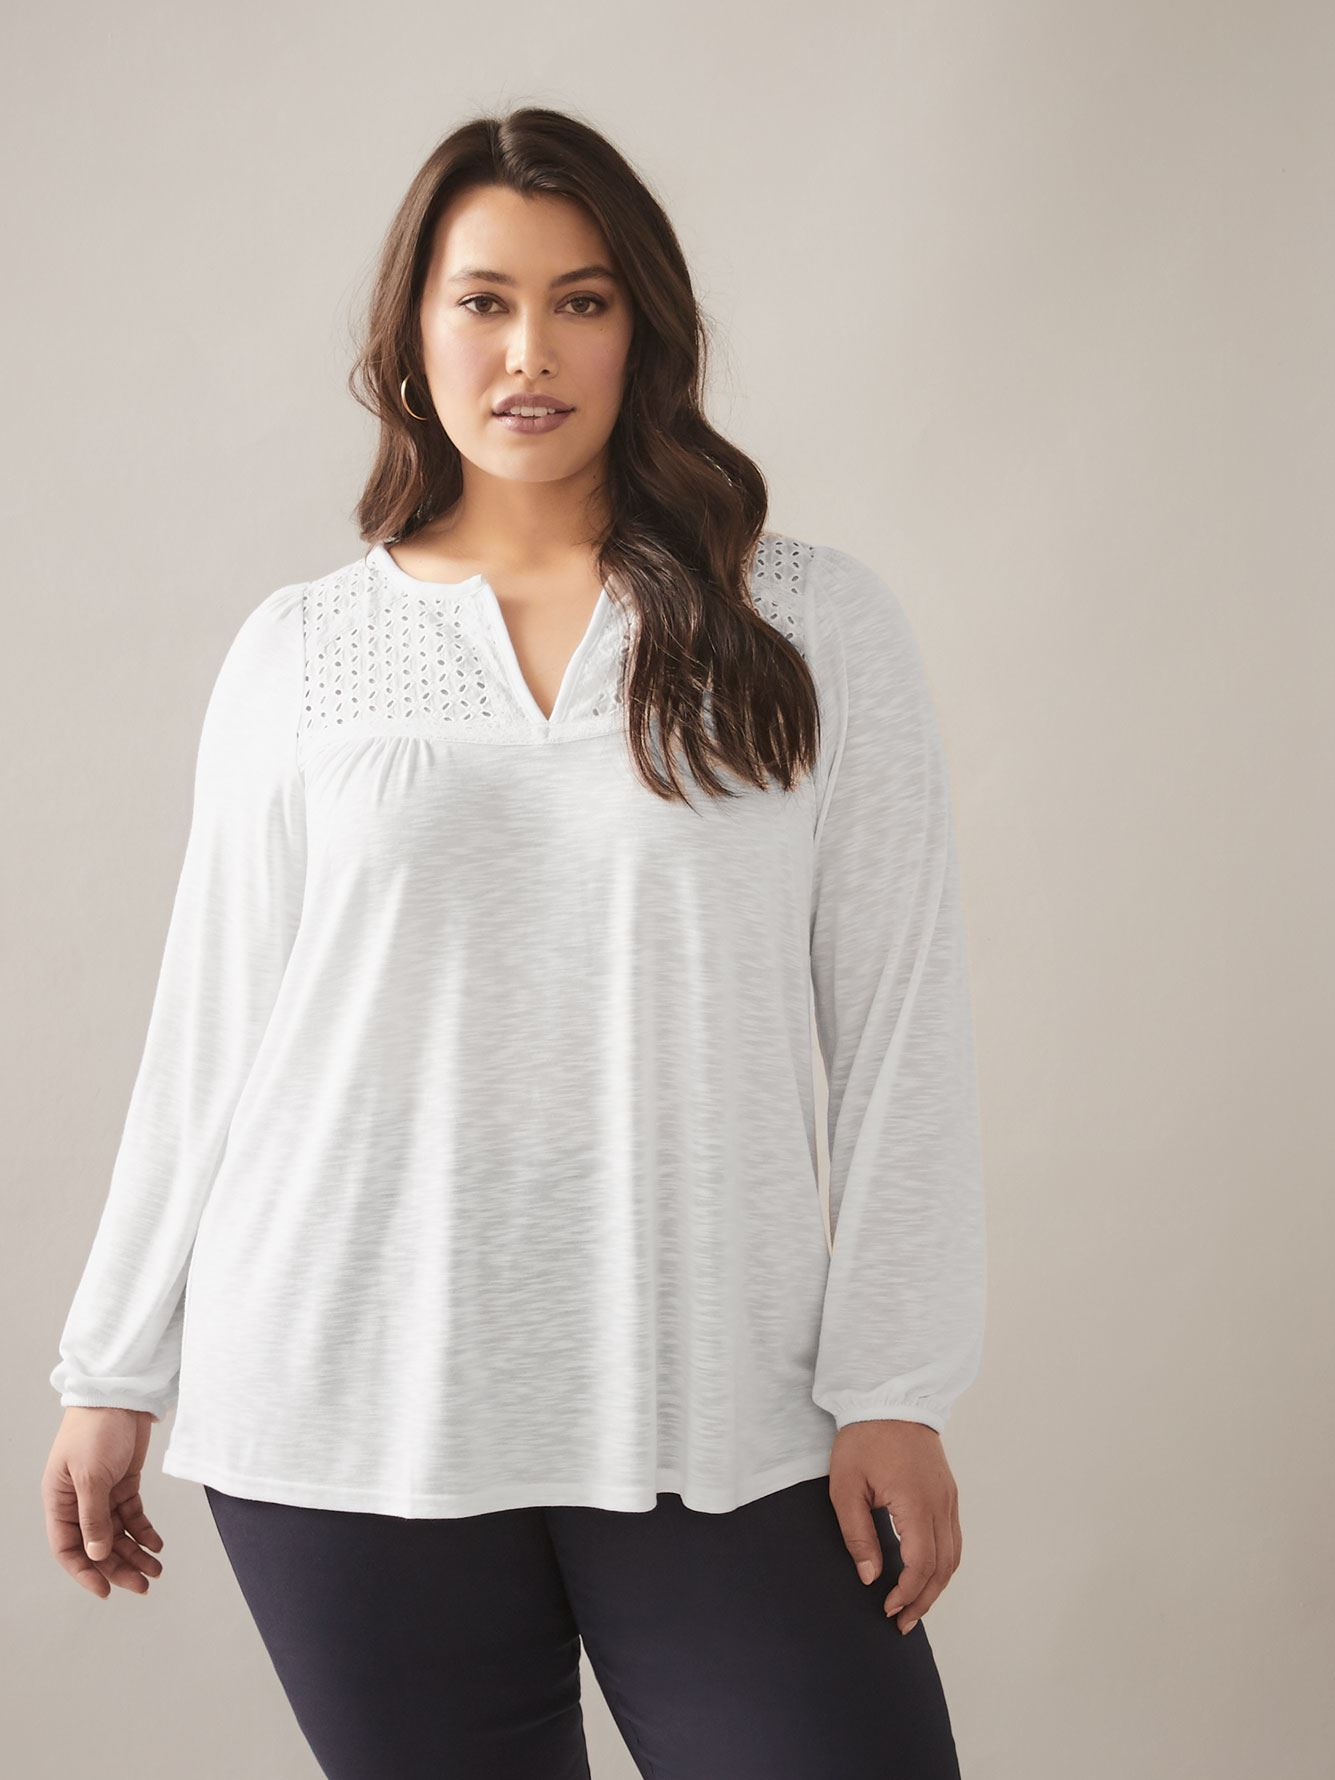 Solid Long Sleeve Top with Eyelet Detail - In Every Story 2